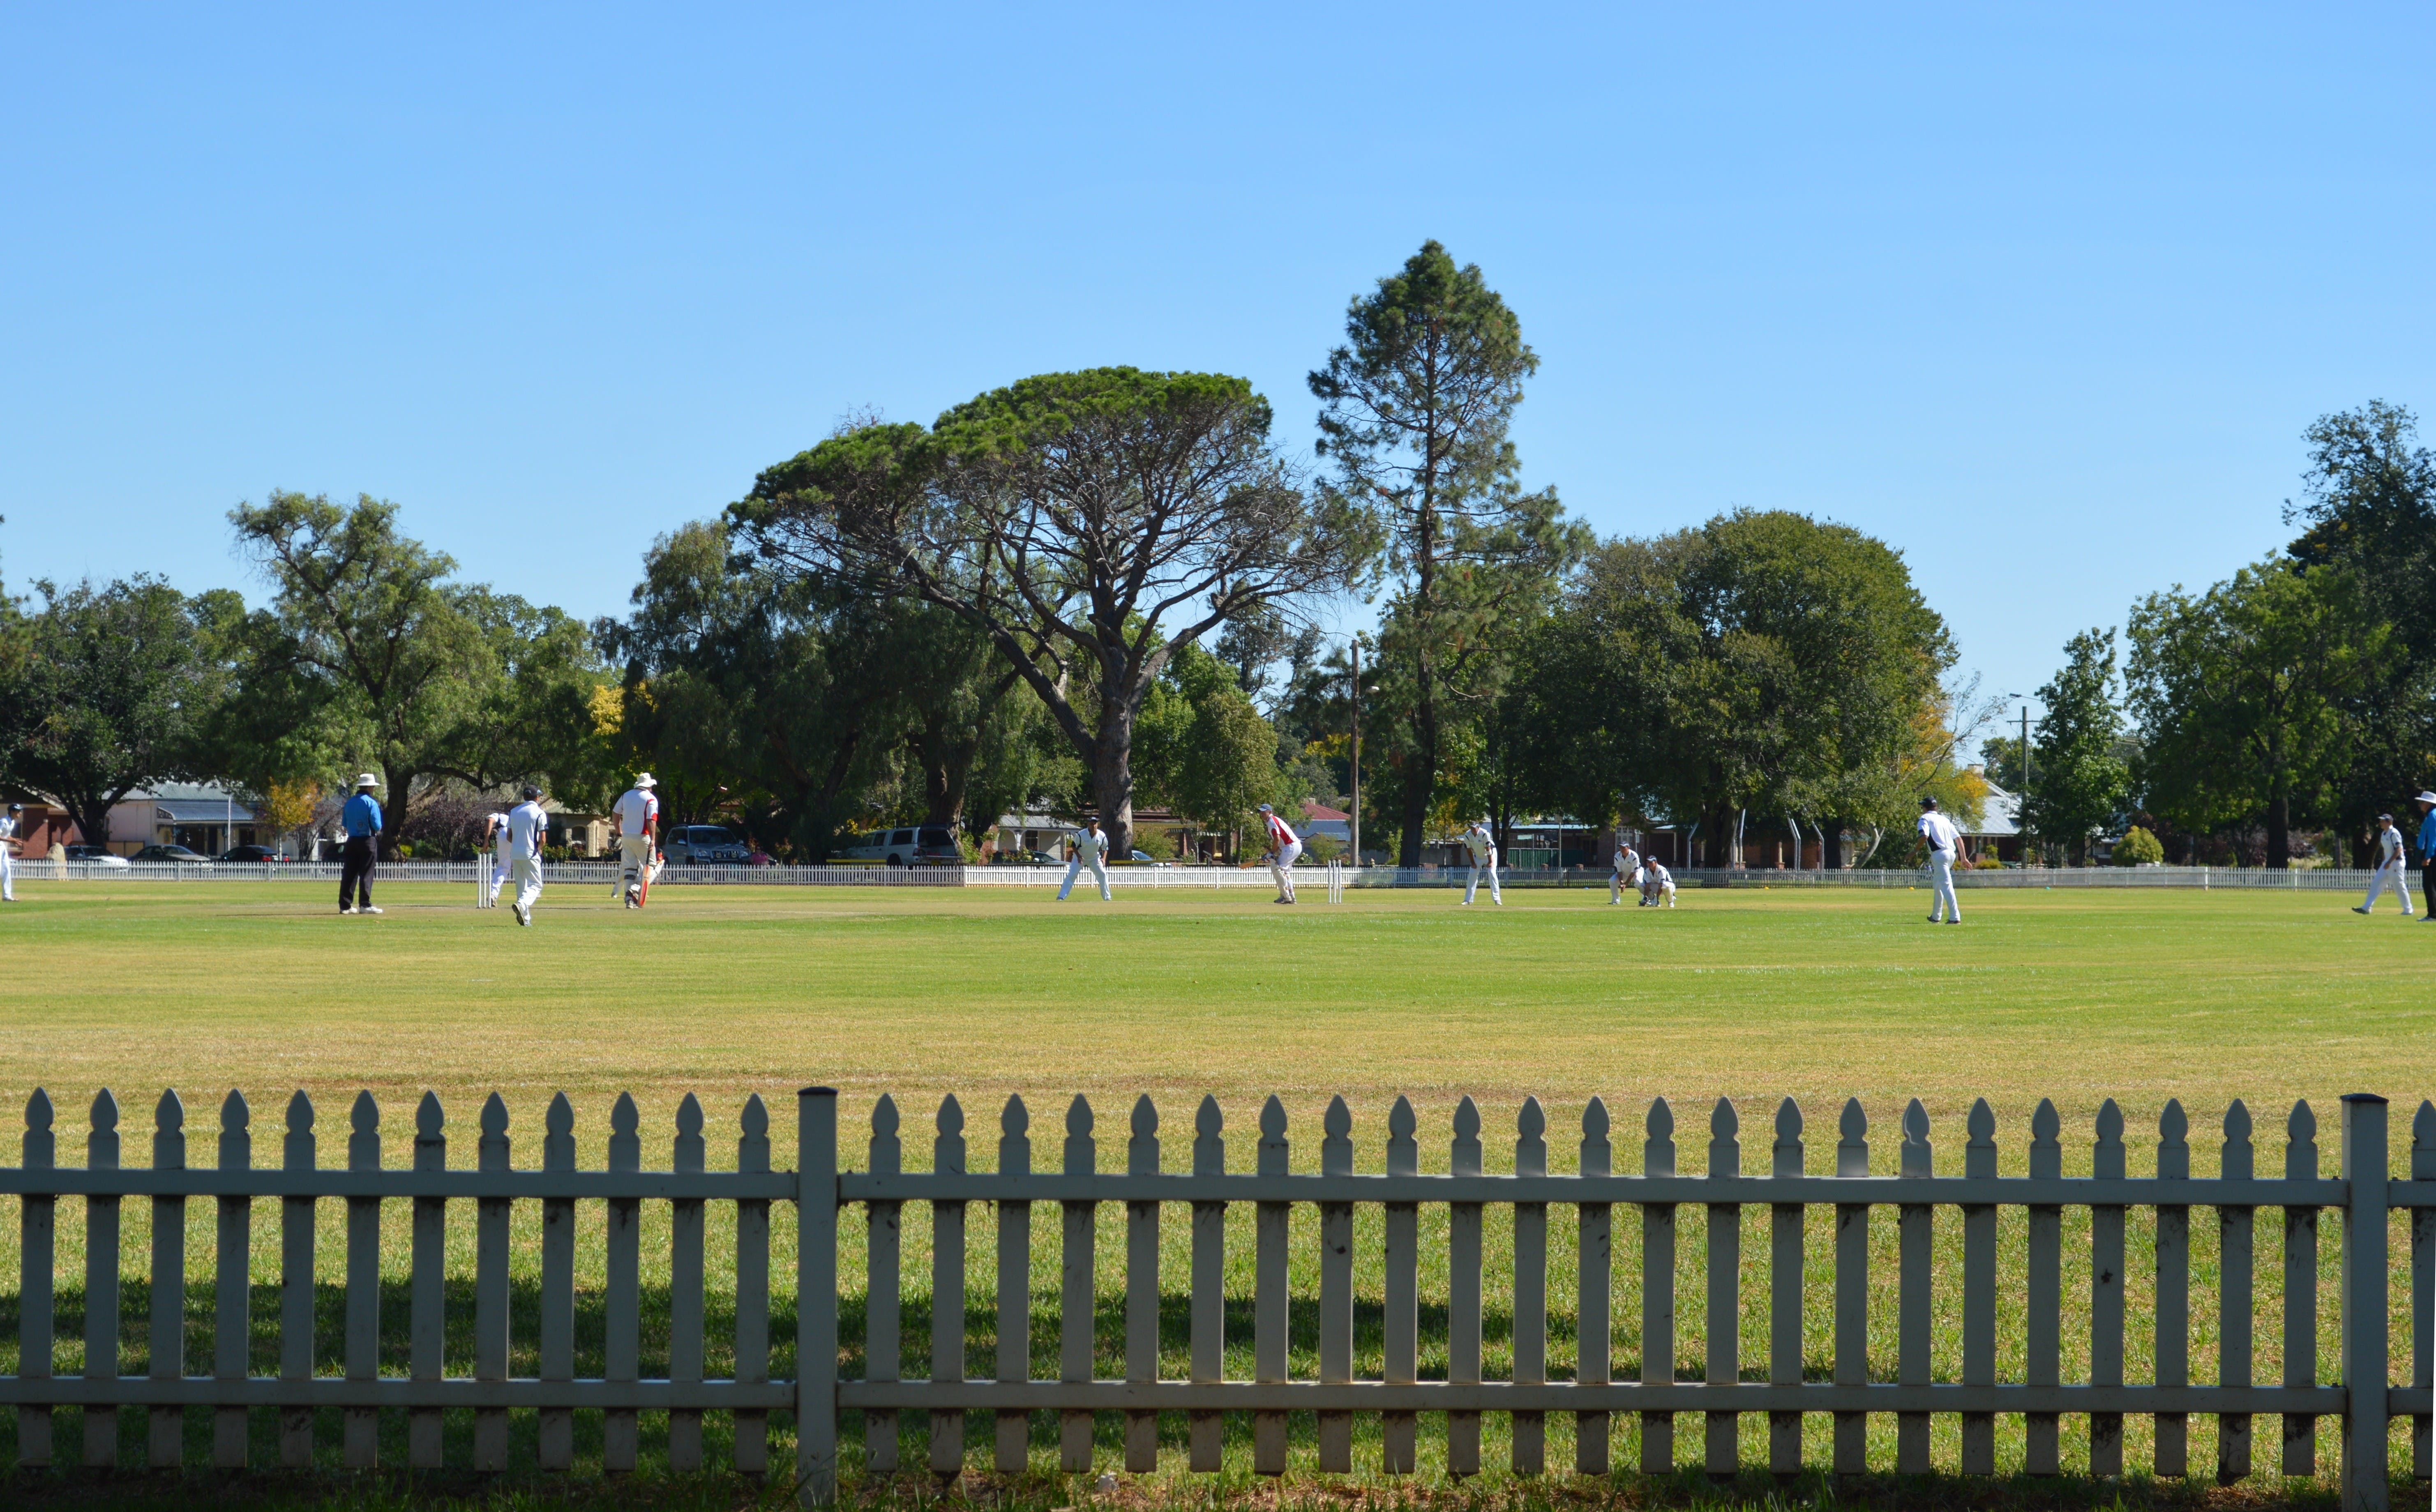 Cootamundra Cricketing Exploration - ACT Tourism